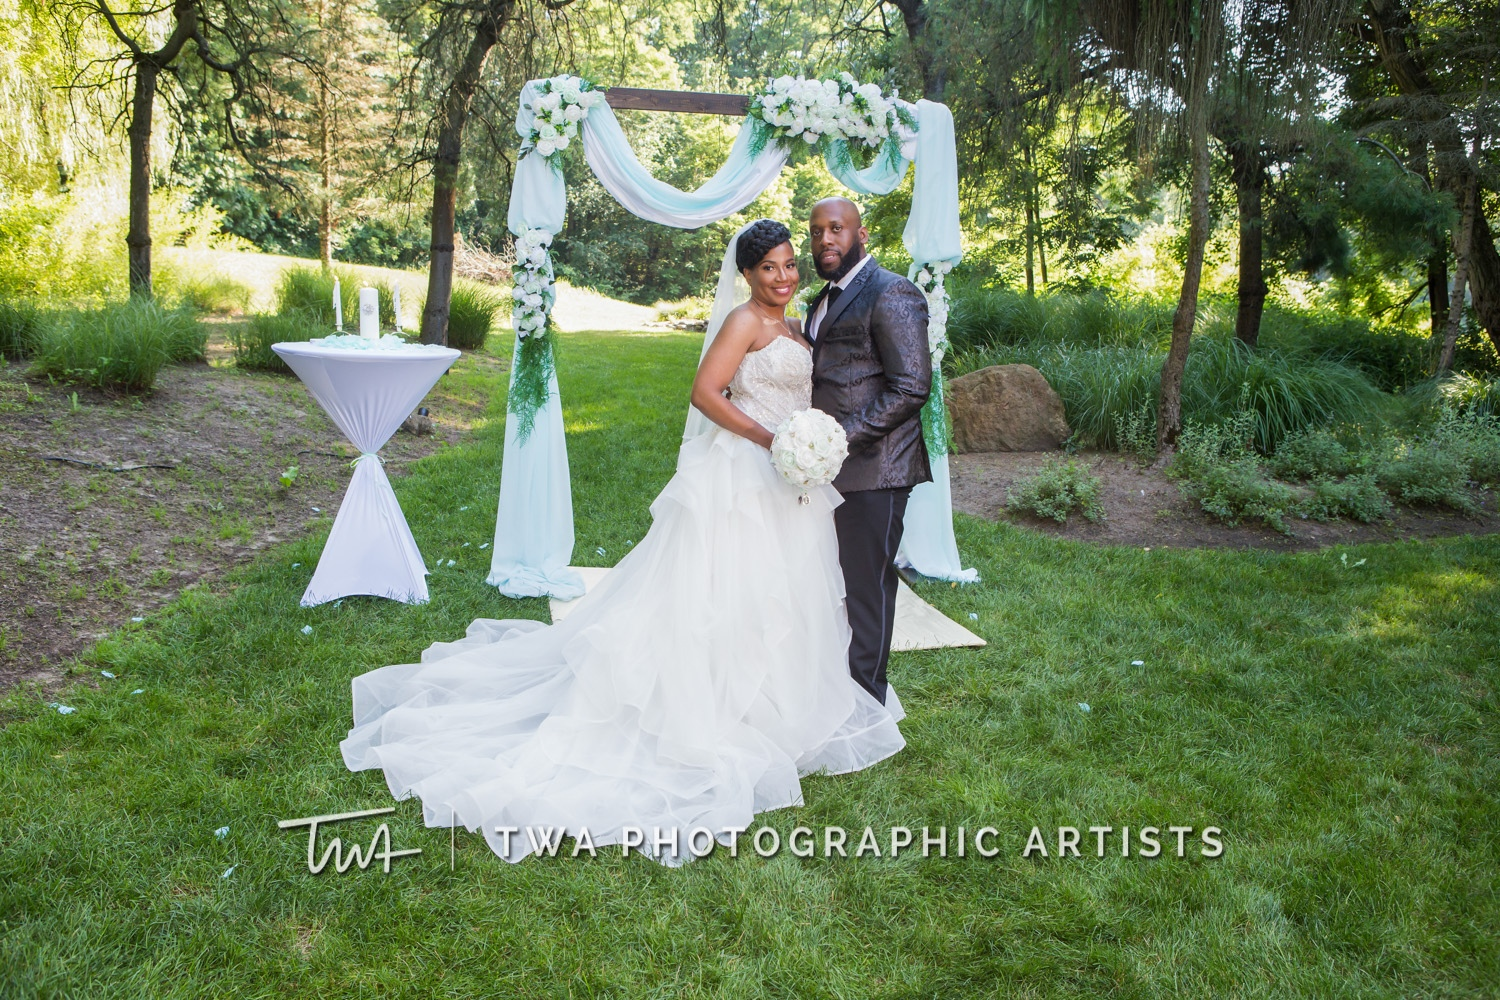 Chicago-Wedding-Photographer-TWA-Photographic-Artists-Private-Residence_Jones_Wright_HM-0766